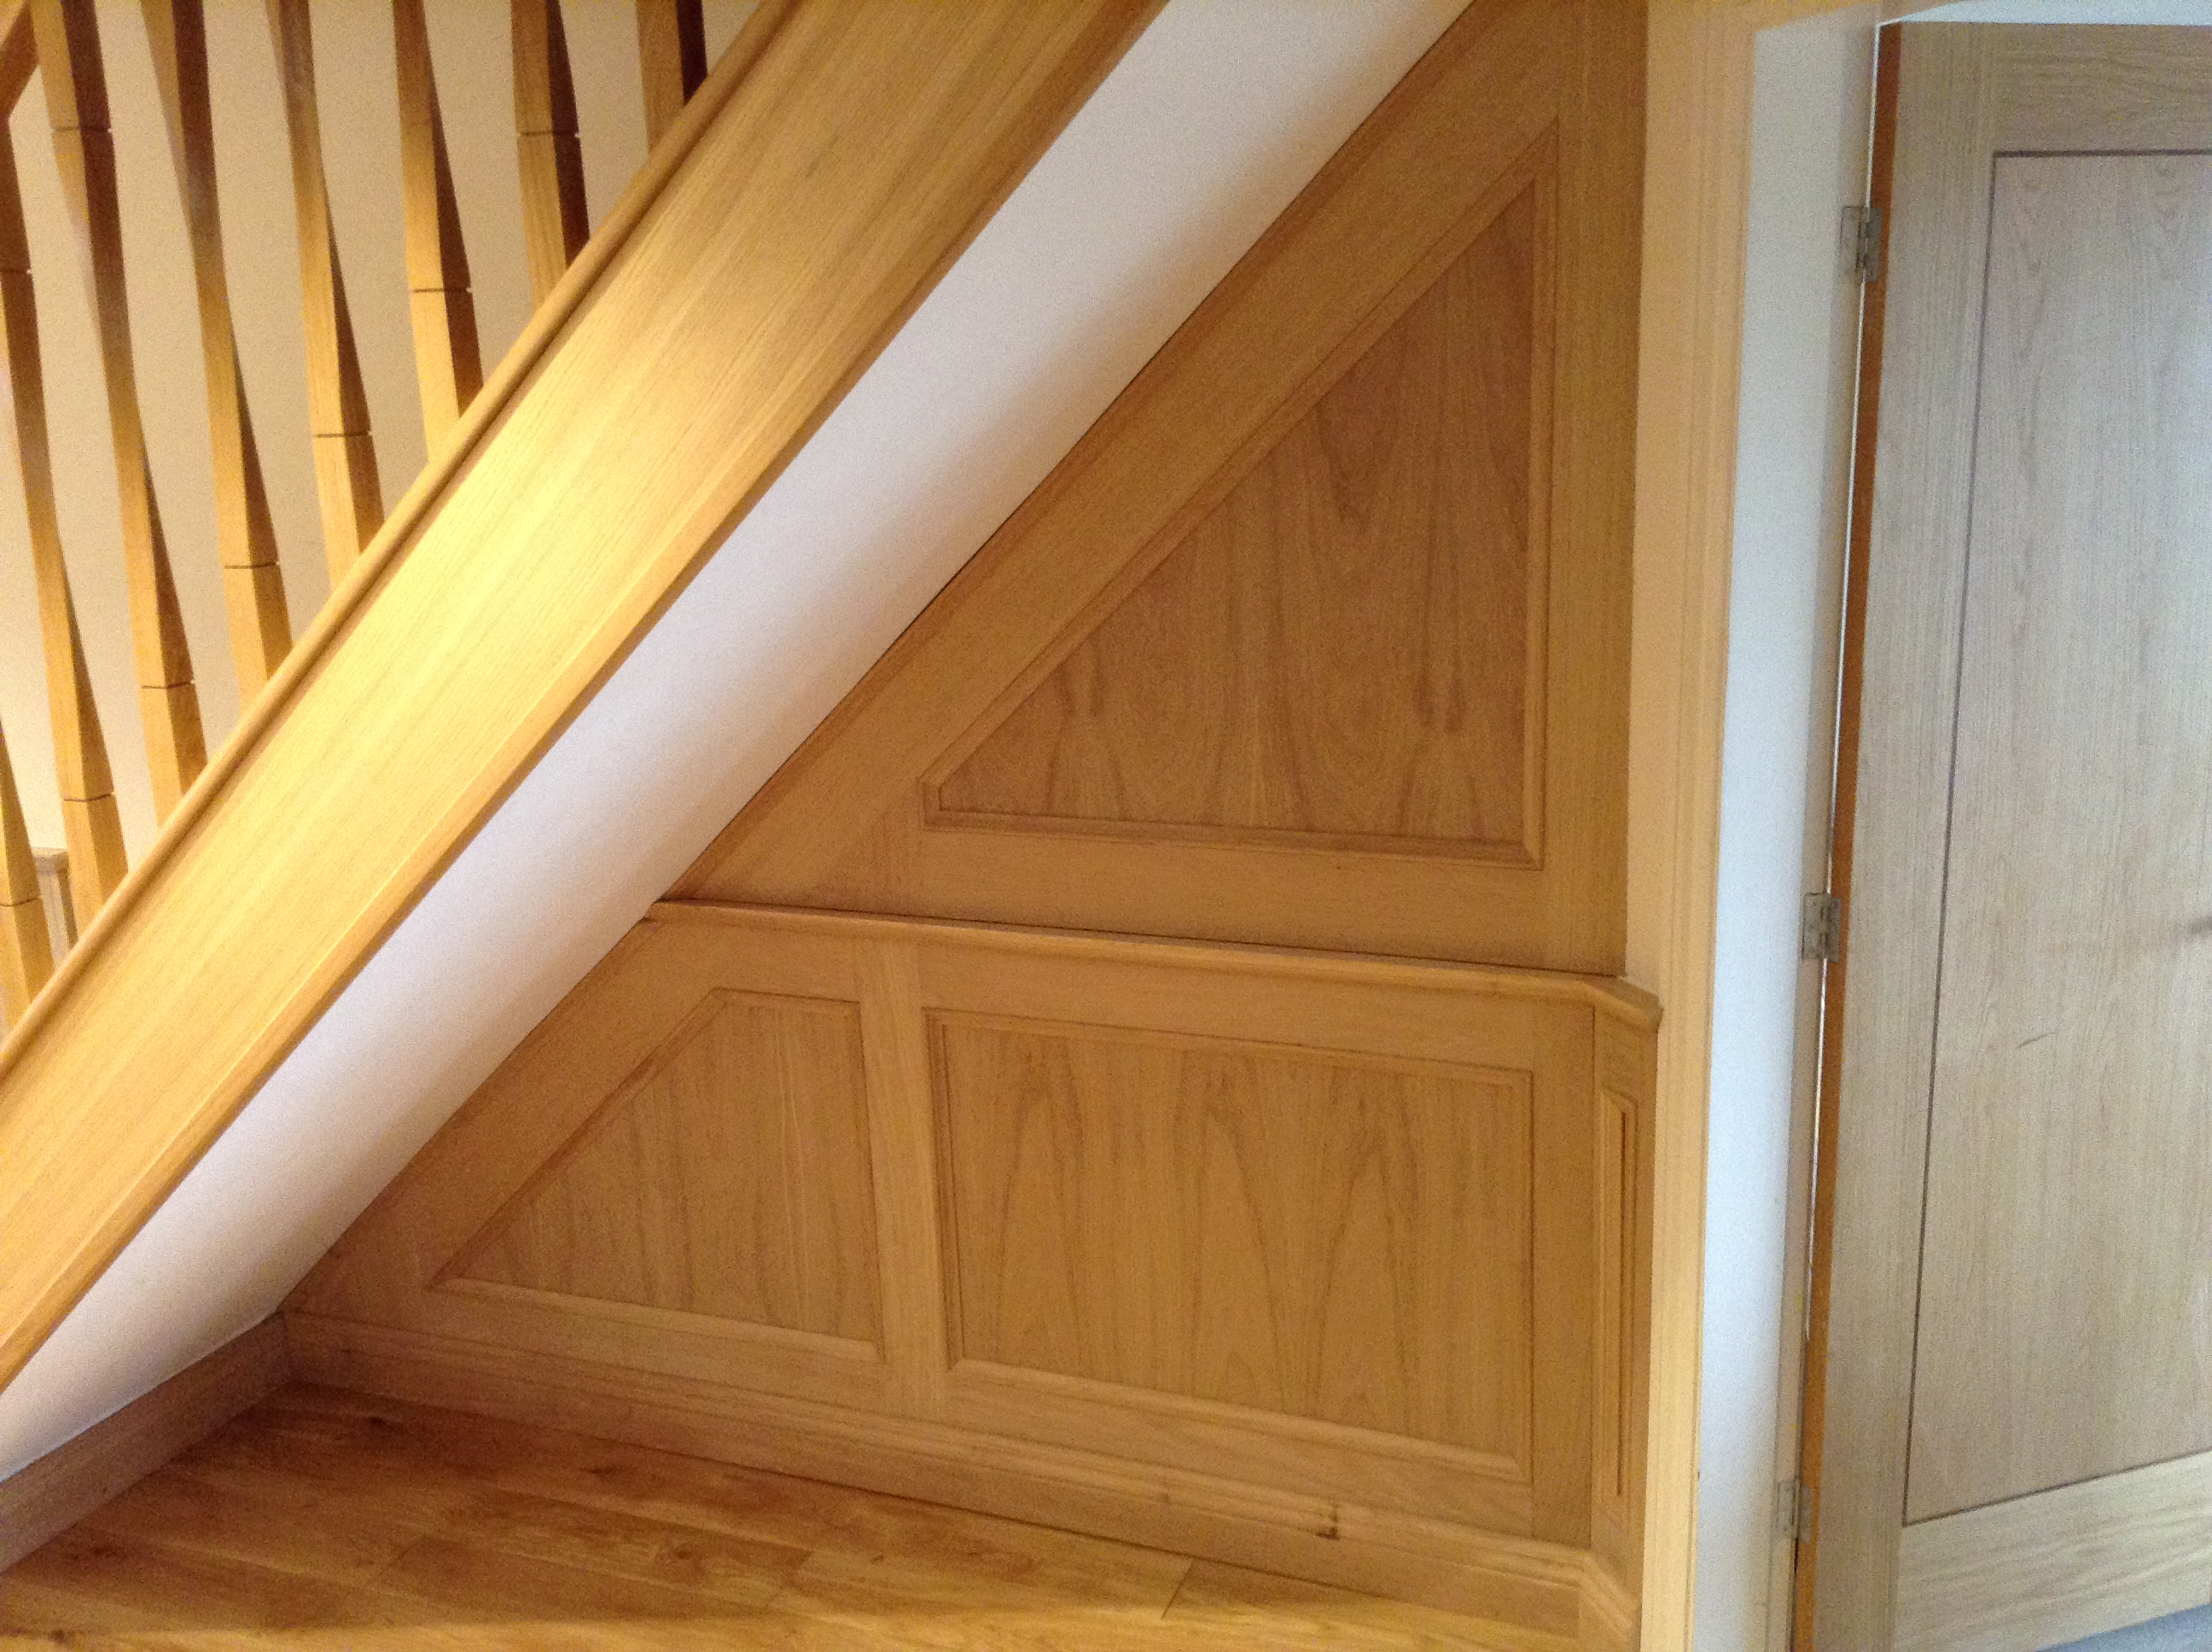 Oak Wall Paneling : Oak wall panelling decorative wood